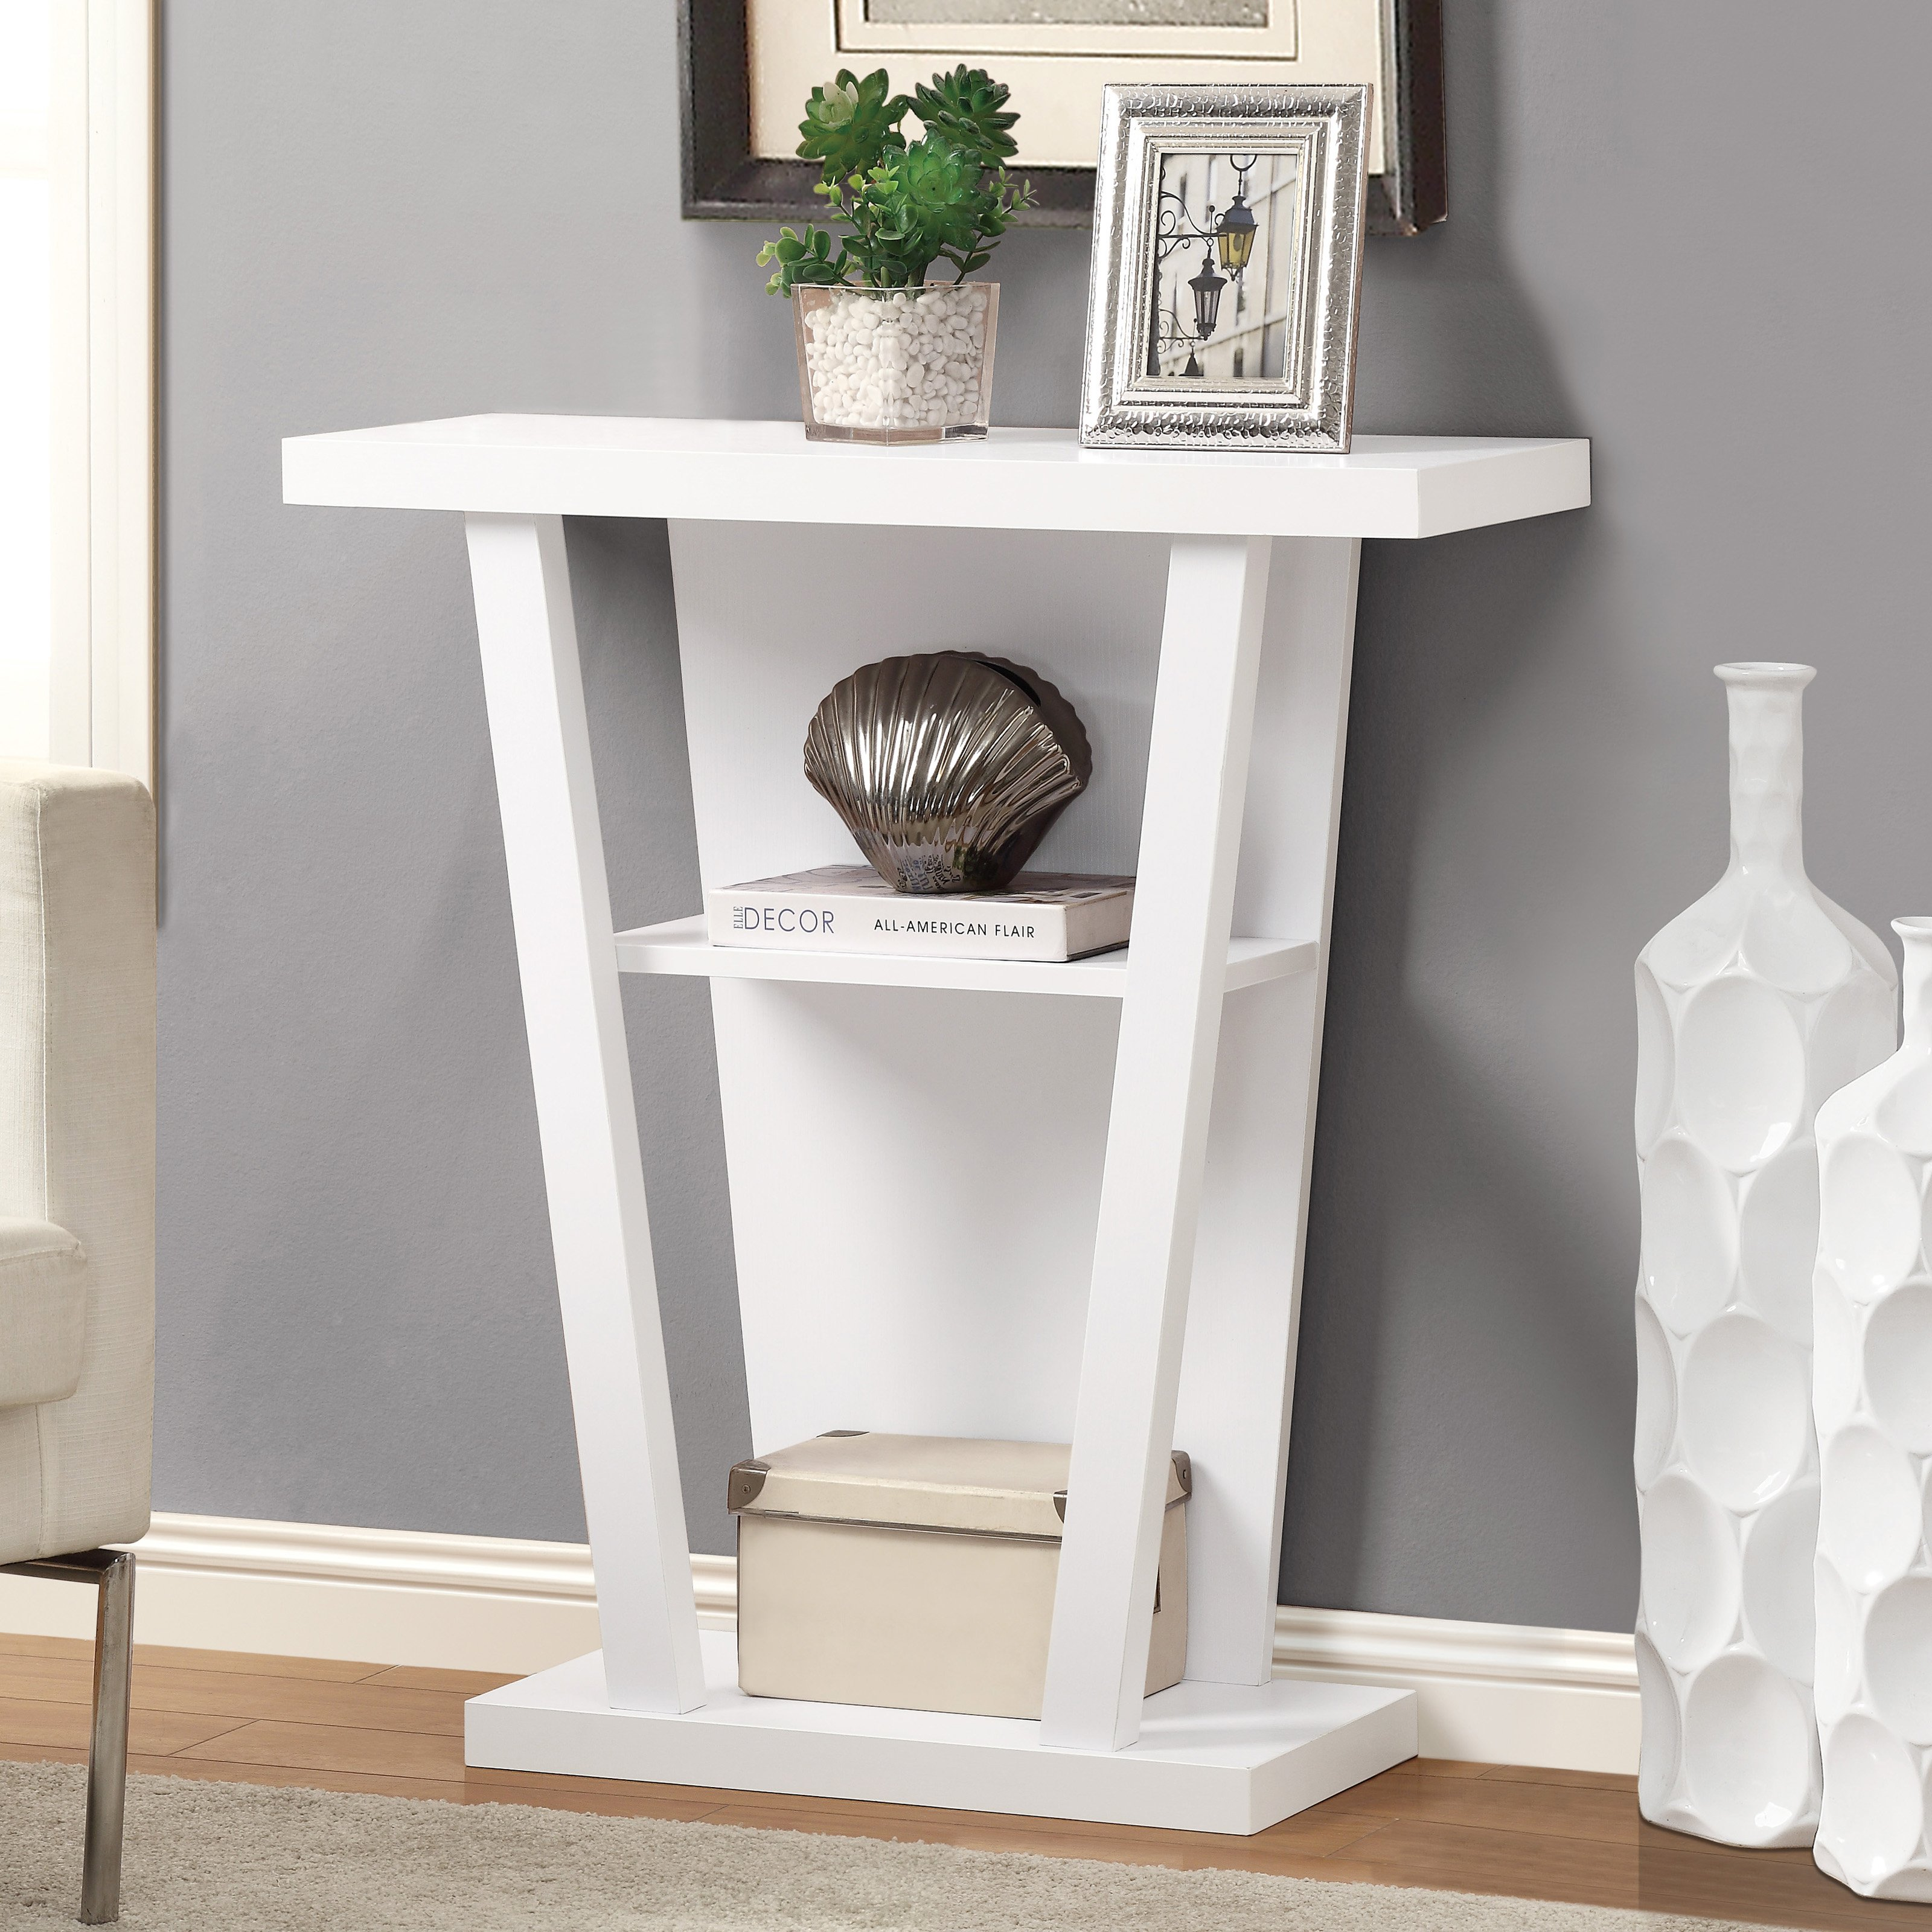 monarch hall console accent table white master grey counter height dining with bench chair design classics pier one imports locations ott sofa small decorative chest drawers